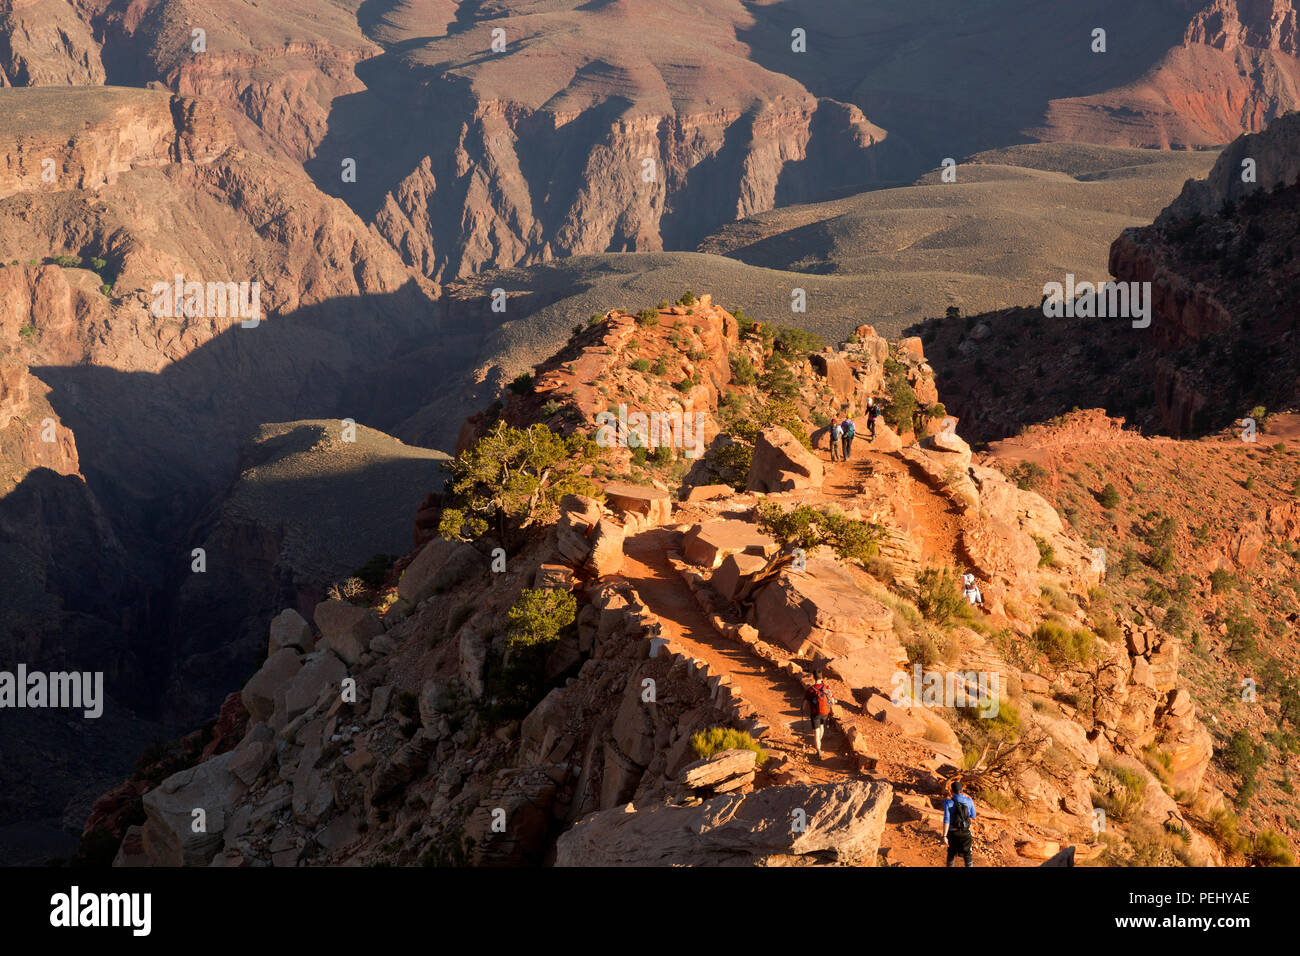 AZ00278-00...ARIZONA - Early morning hikers on the South Kaibab Trail in Grand Canyon National Park. - Stock Image